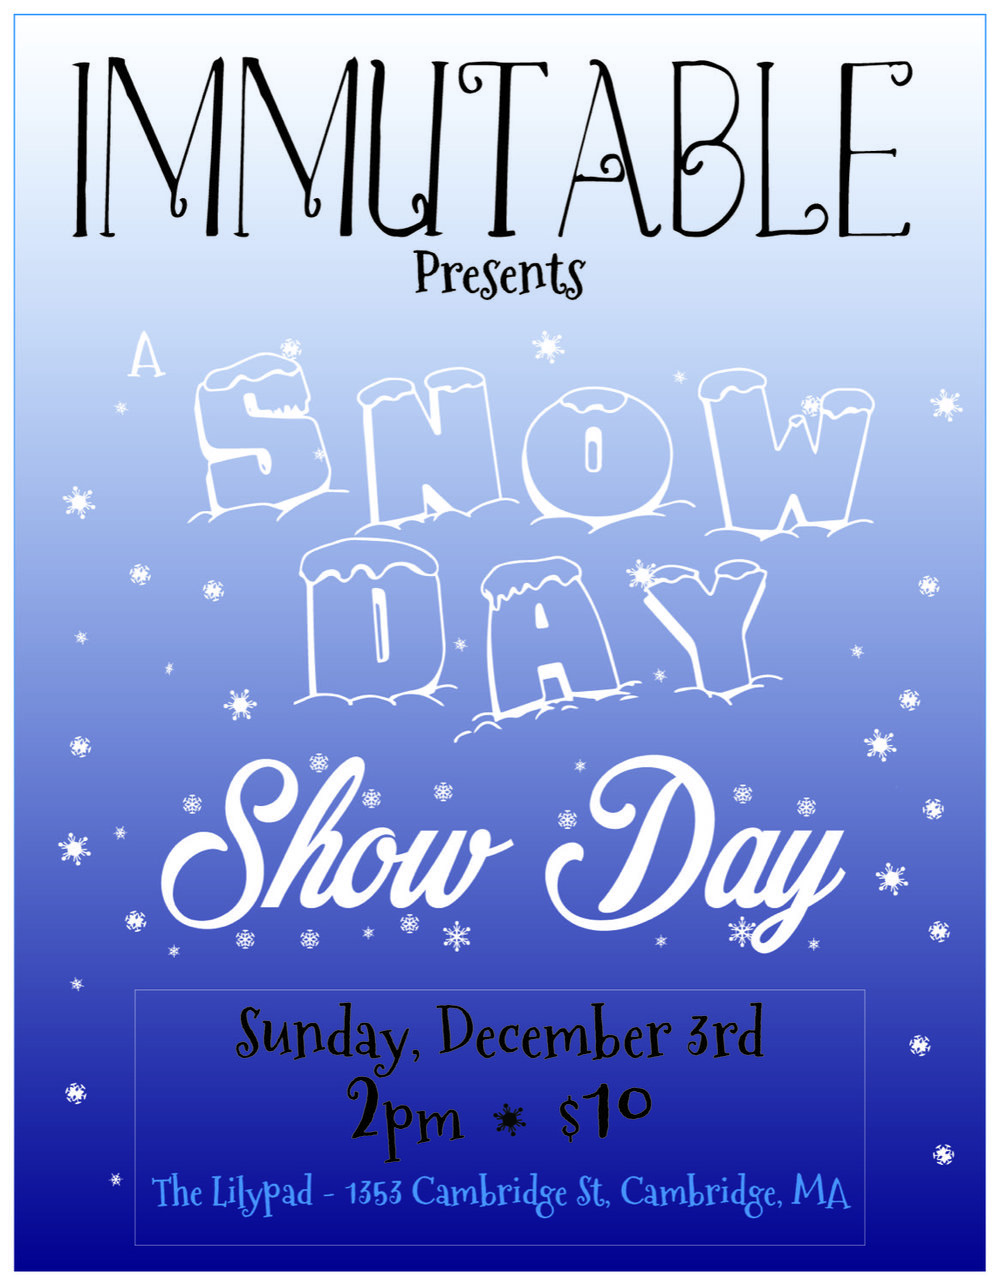 immutable show poster-01 copy_web.jpg